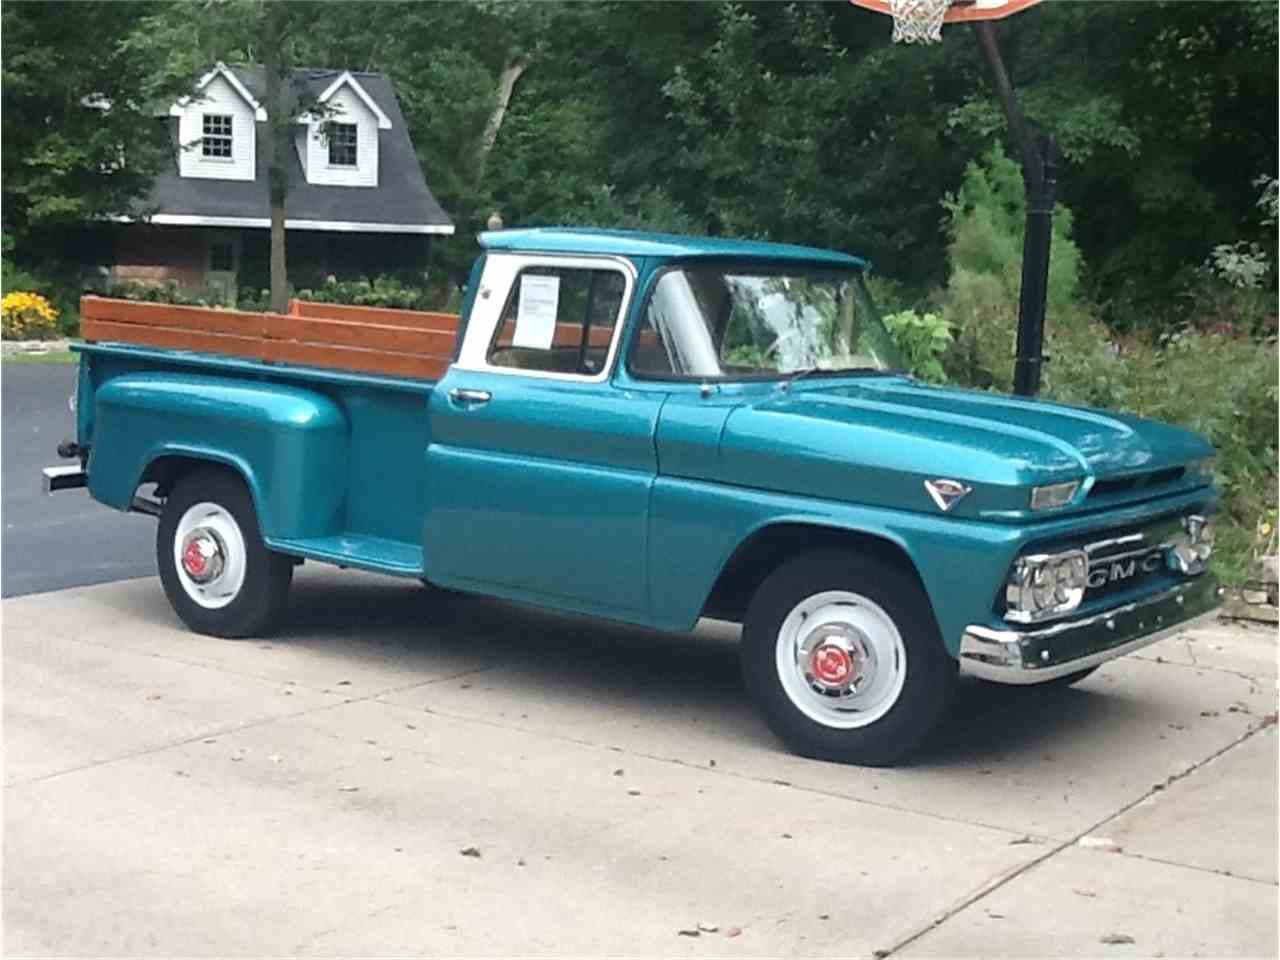 X4 Truck For Sale >> 1963 GMC Pickup for Sale | ClassicCars.com | CC-595571